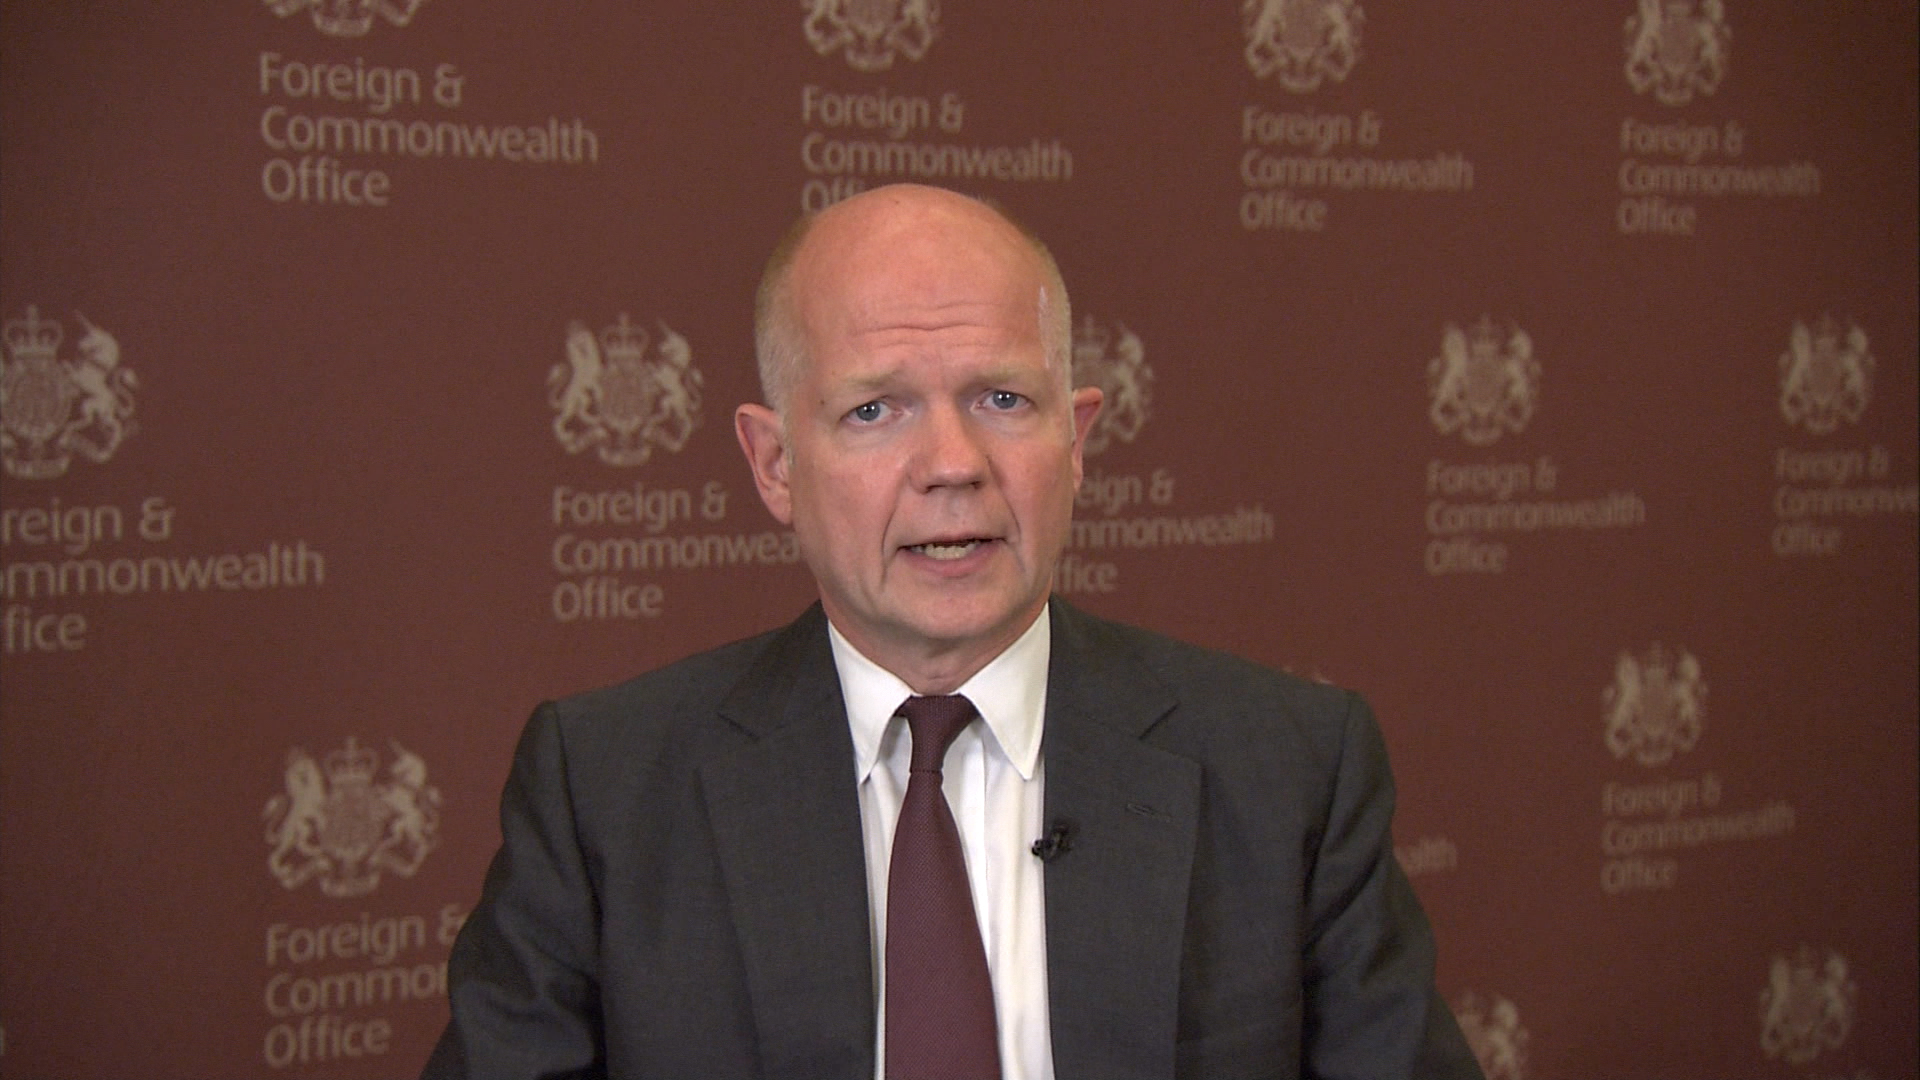 Hague: Iran must be part of Iraq discussion